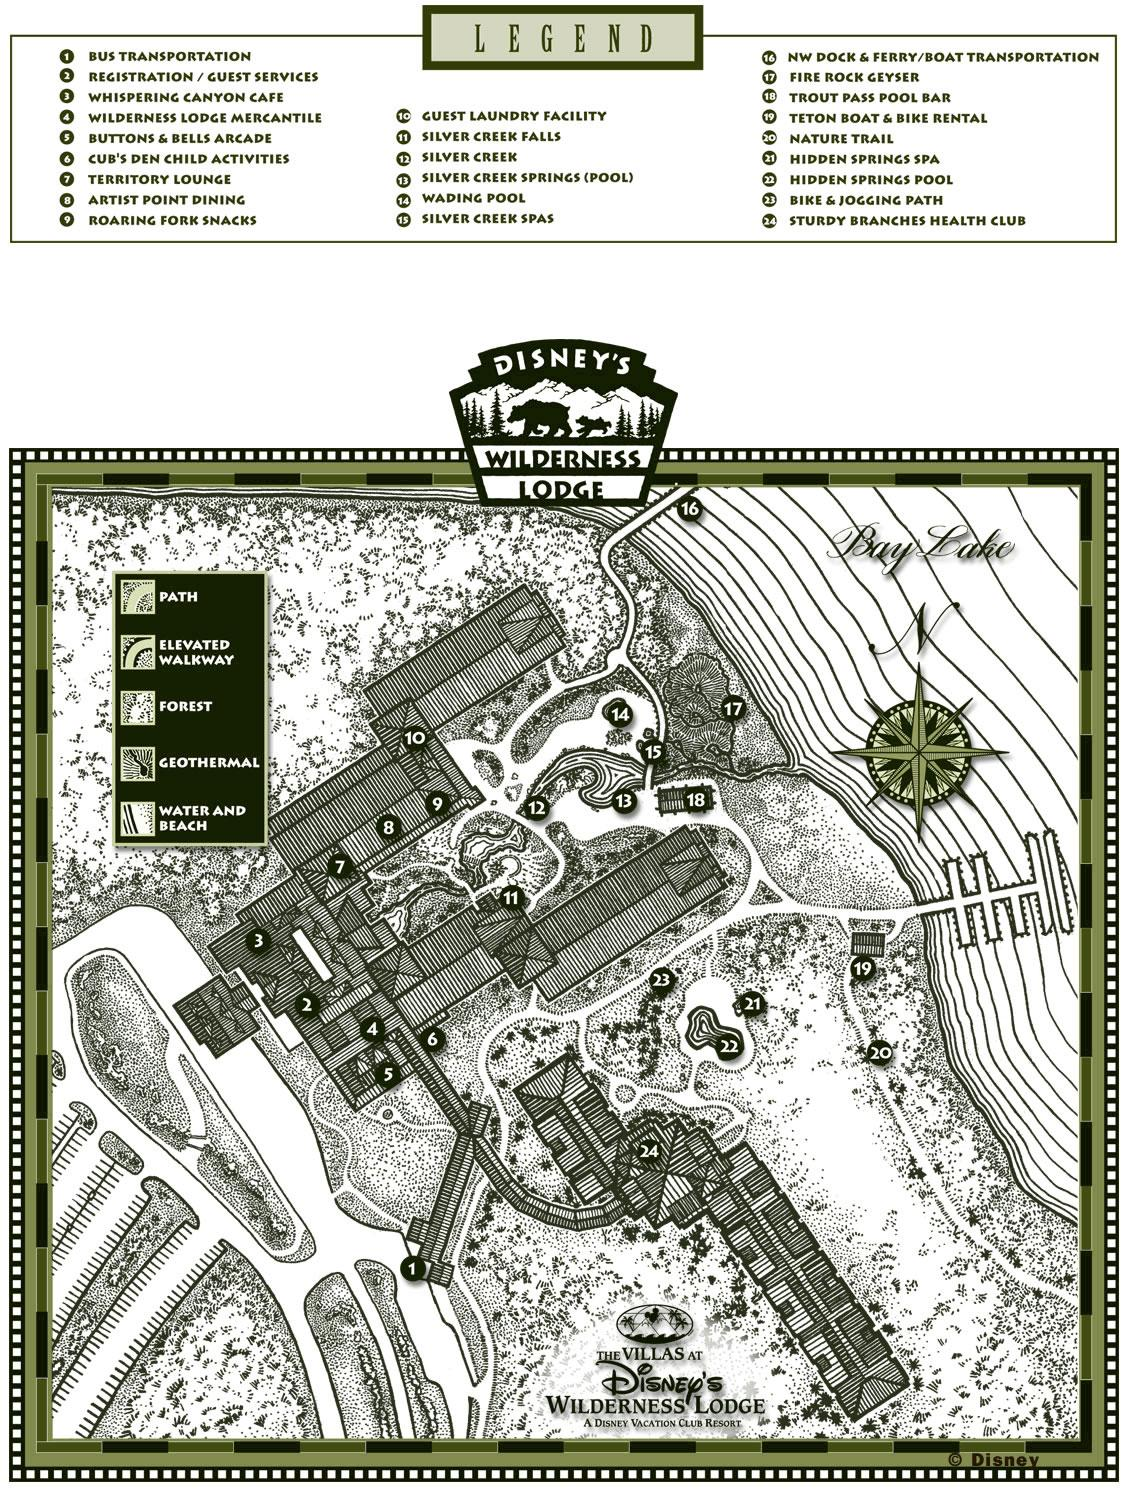 the-villas-at-wilderness-lodge-resort-map1